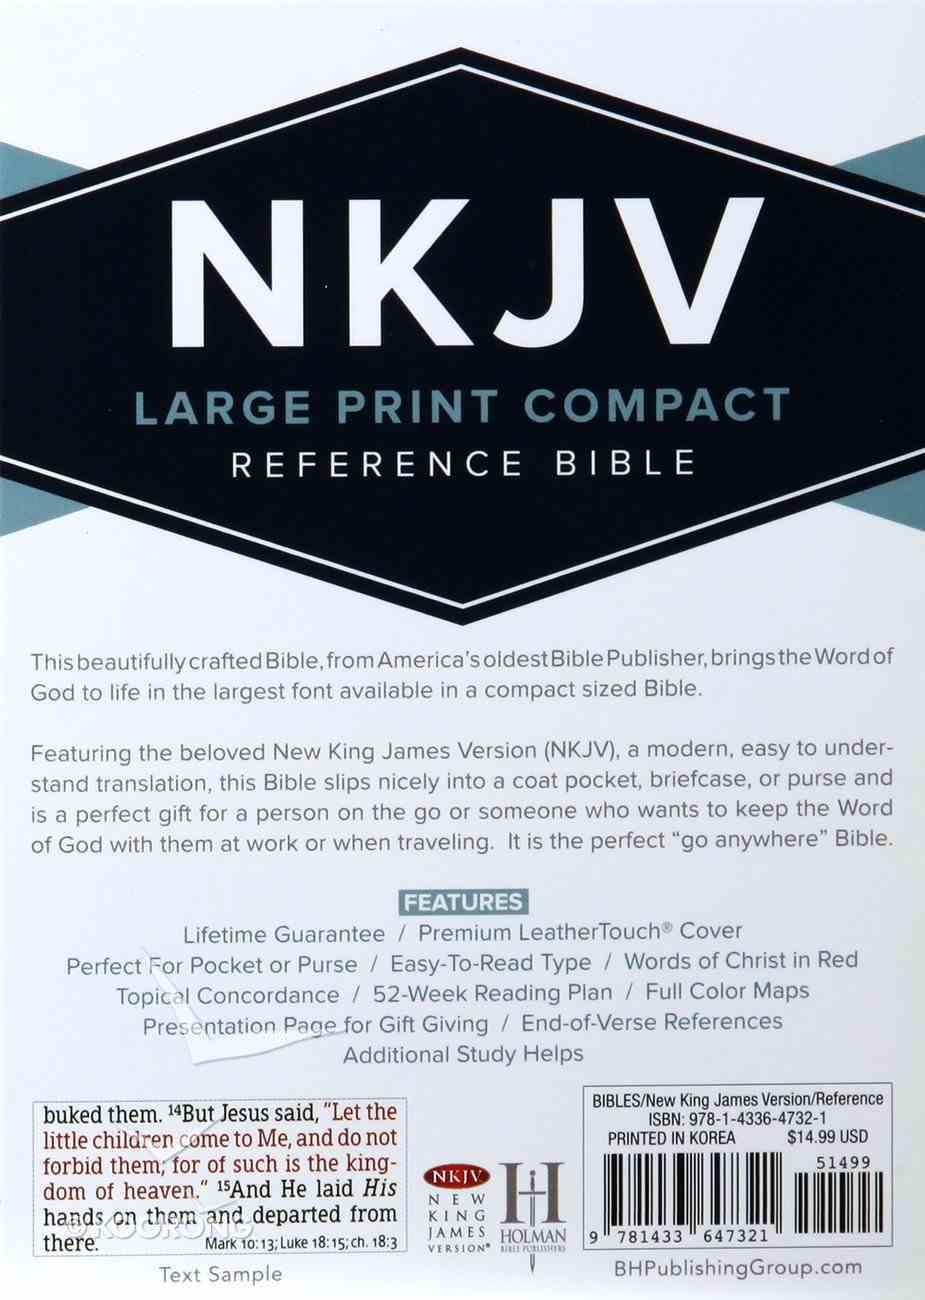 NKJV Large Print Compact Reference Bible Pink Red Letter Edition Imitation Leather